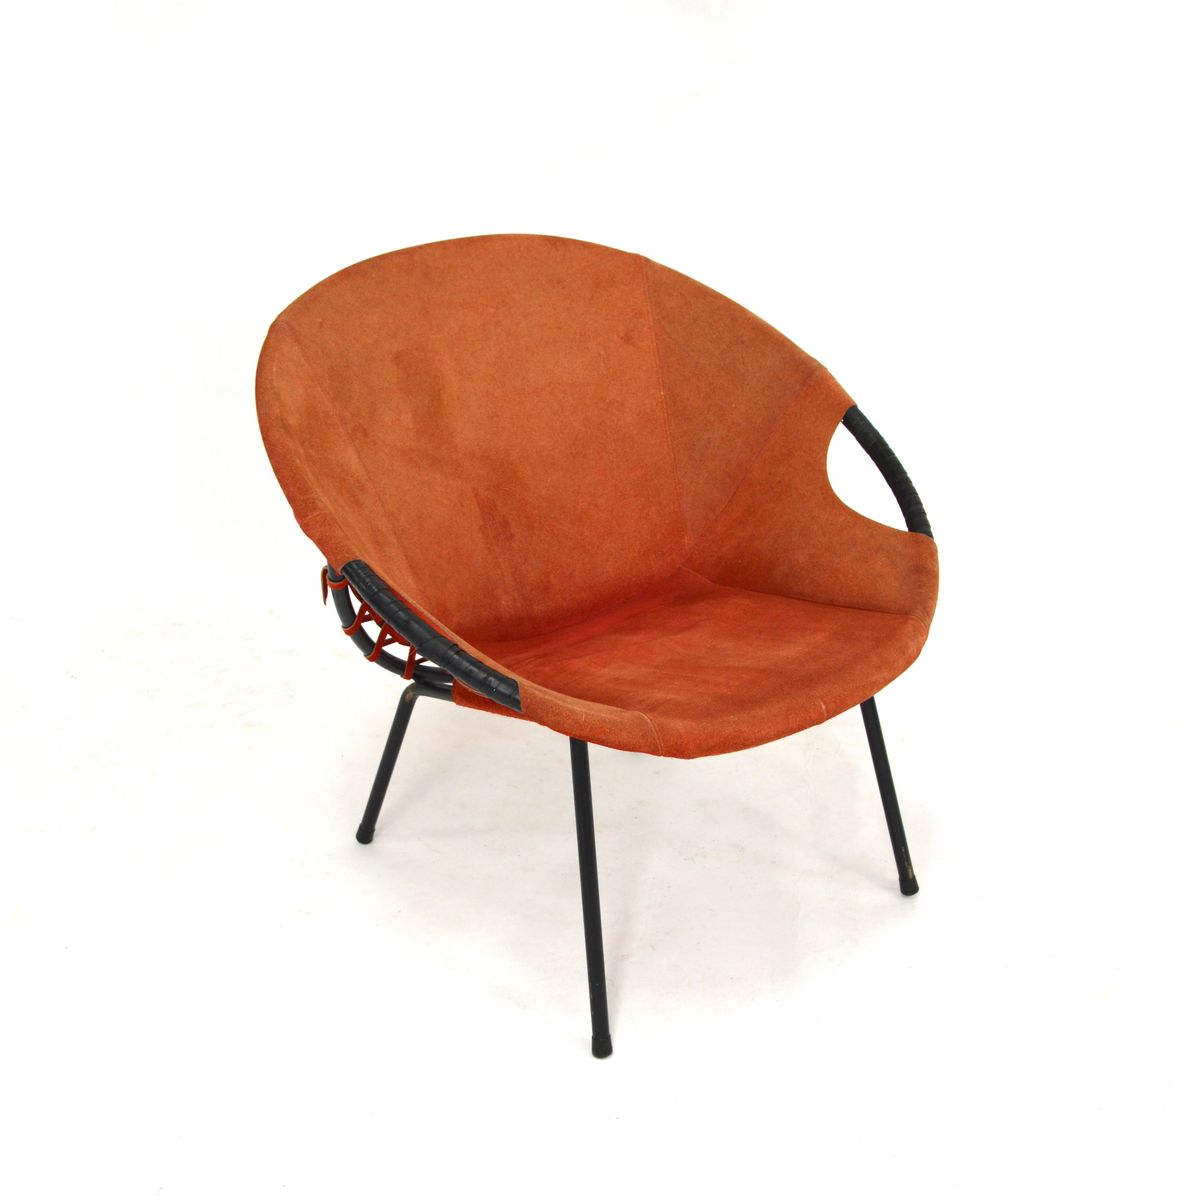 co chairs circle green club chair vintage from lusch and for sale at pamono